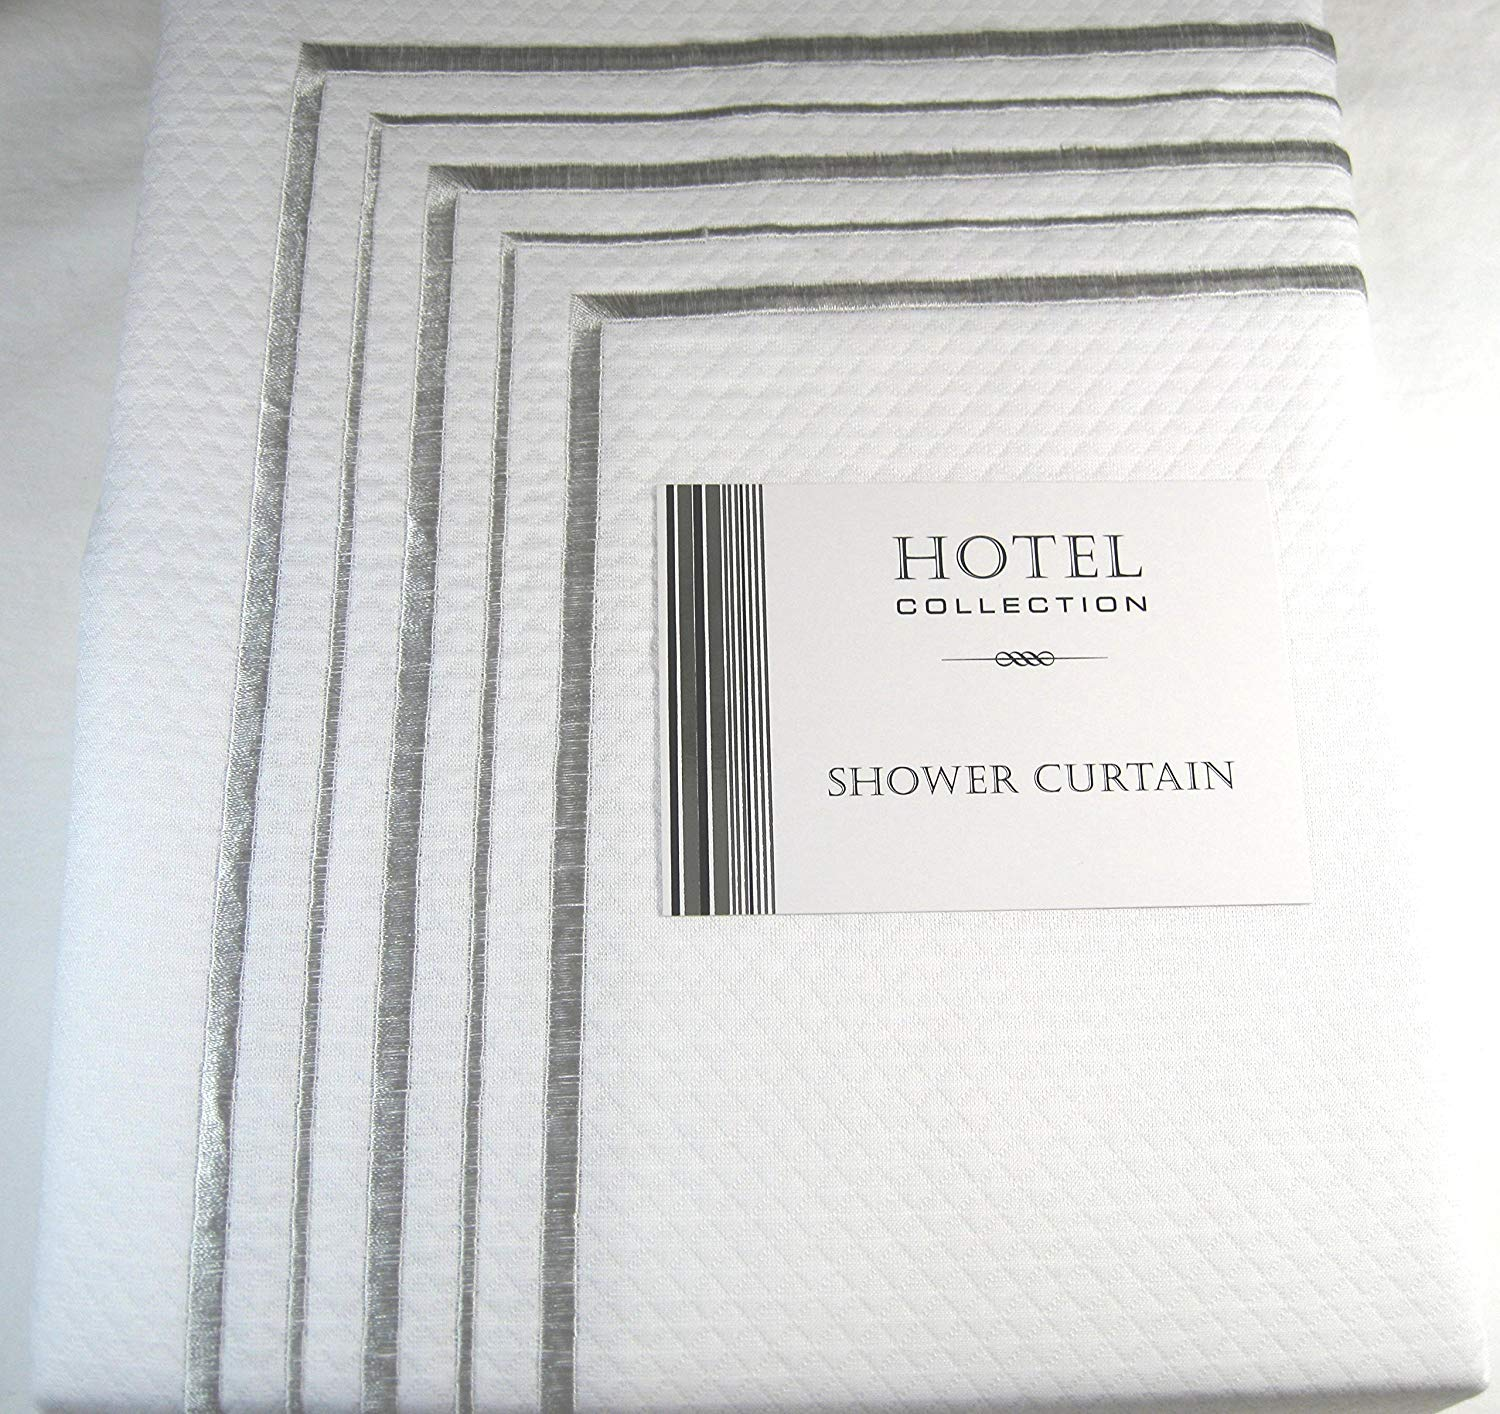 Hotel Collection Premium Quality Fabric Shower Curtain White And Silver Border 72